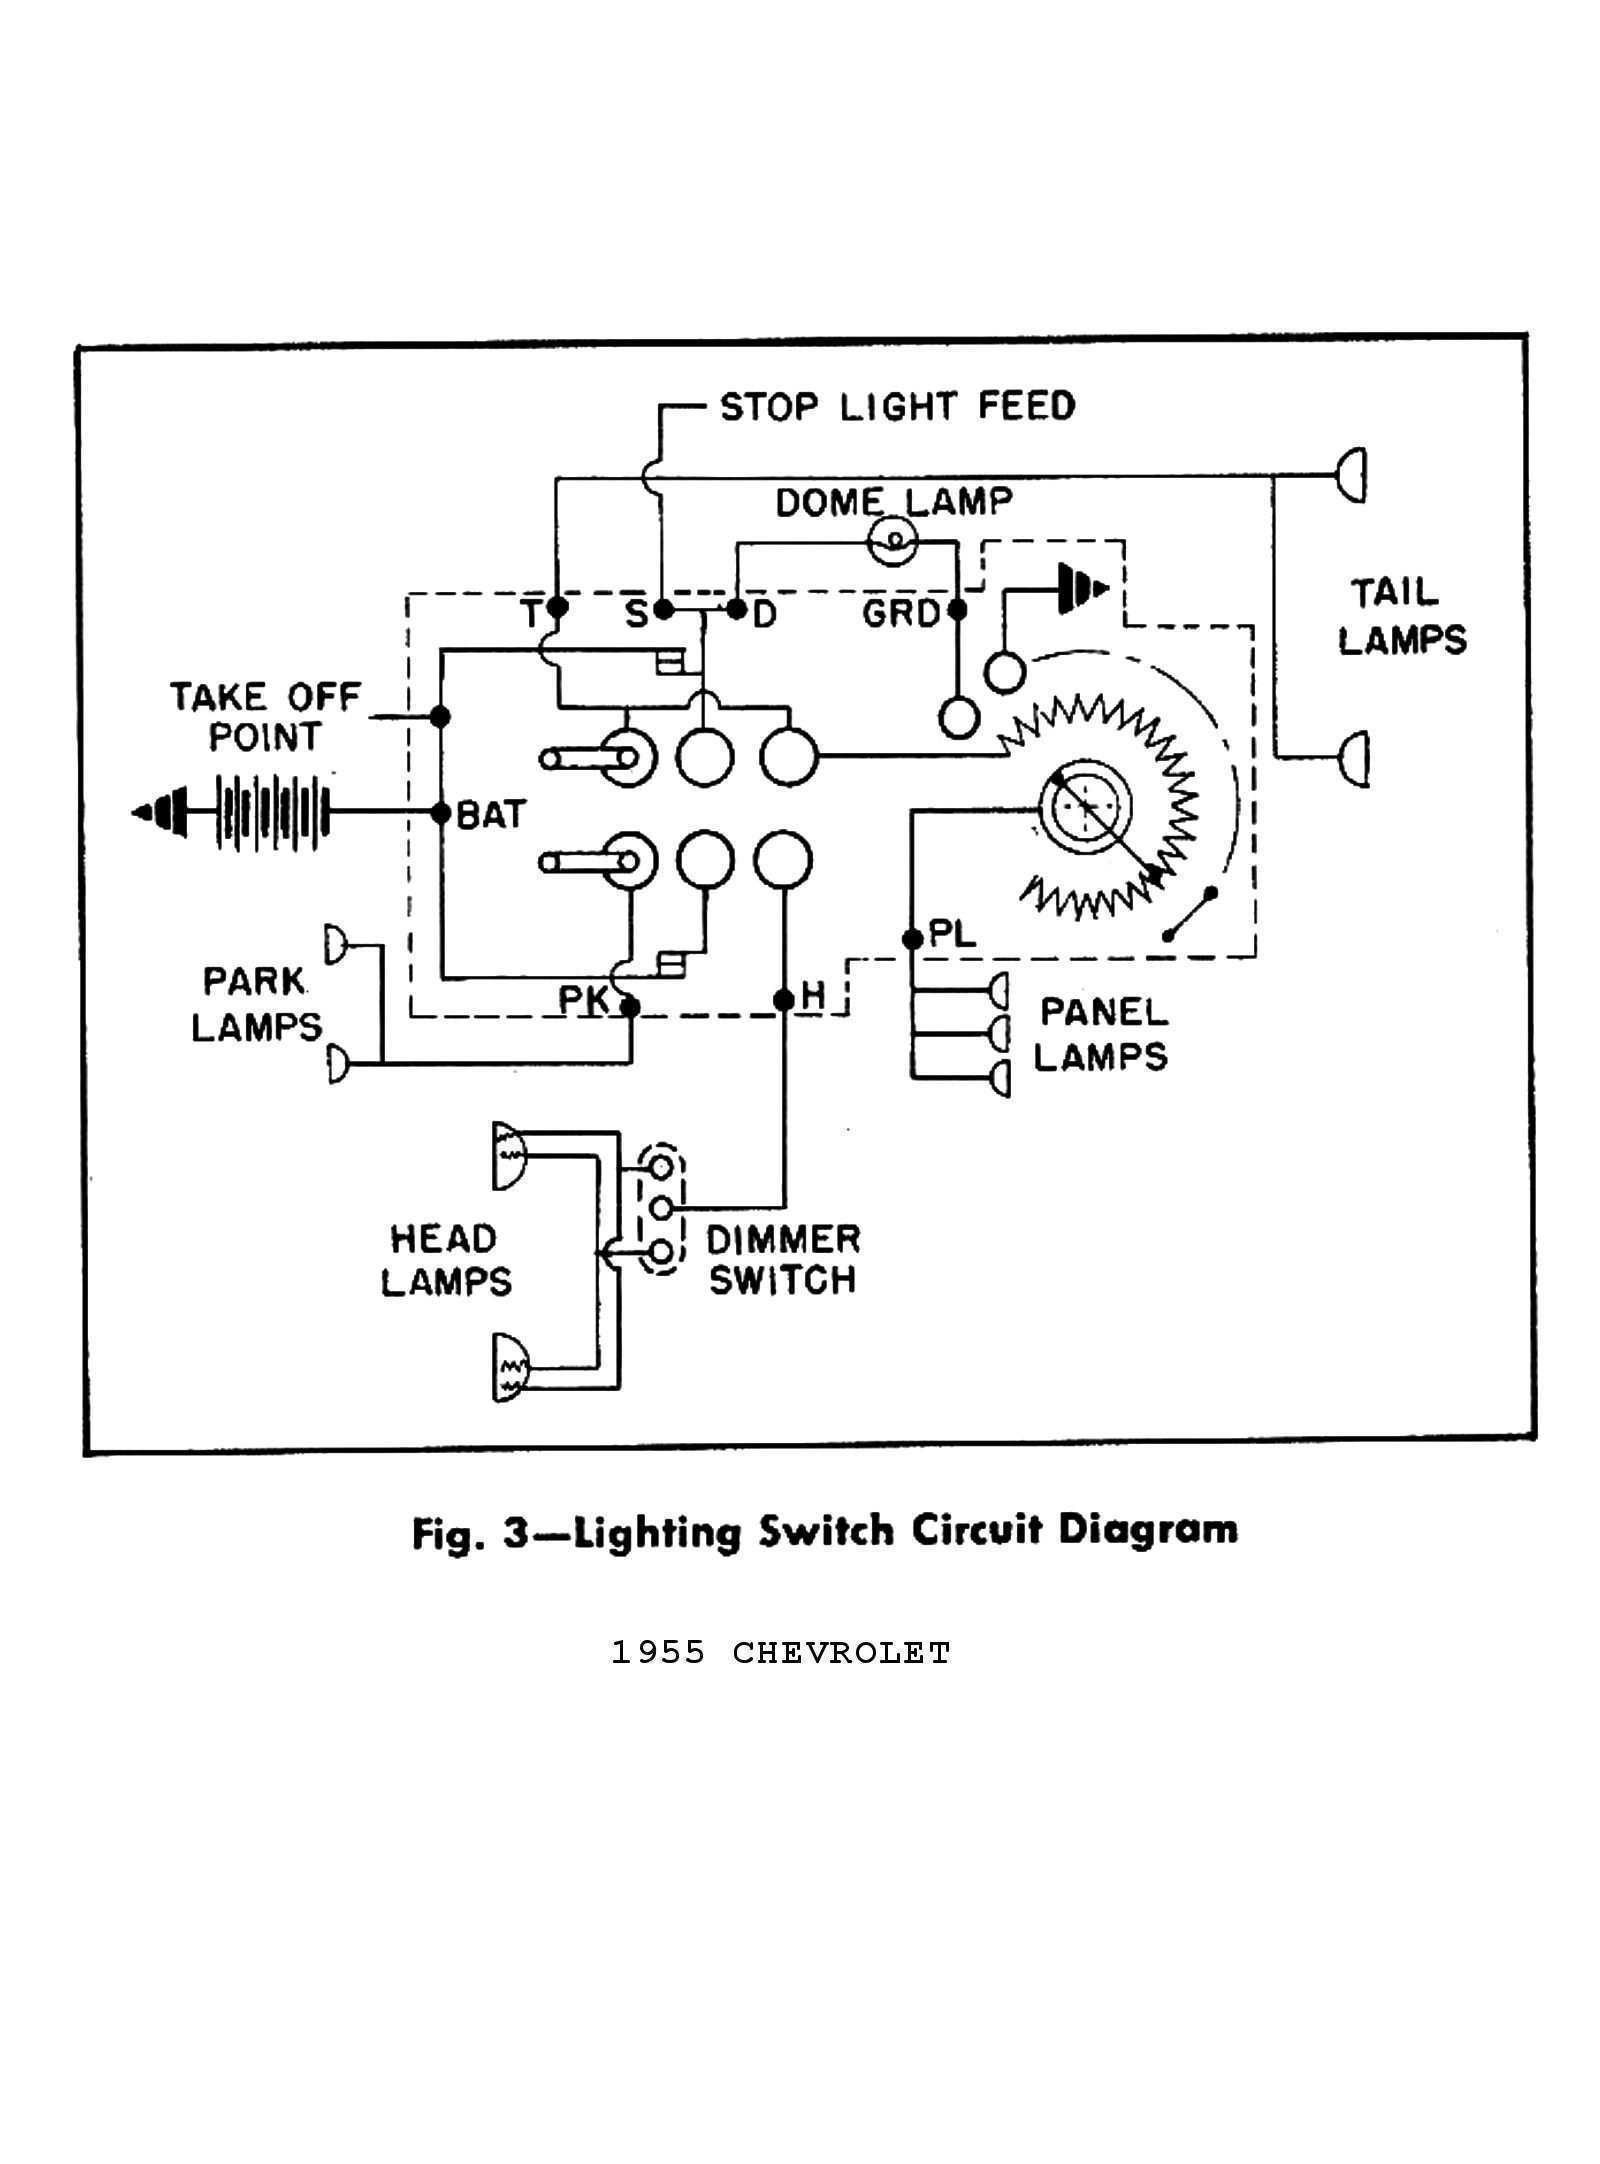 2000 ford F350 Tail Light Wiring Diagram 1949 Chevy Tail Light Wiring Harness Data Wiring Diagrams • Of 2000 ford F350 Tail Light Wiring Diagram